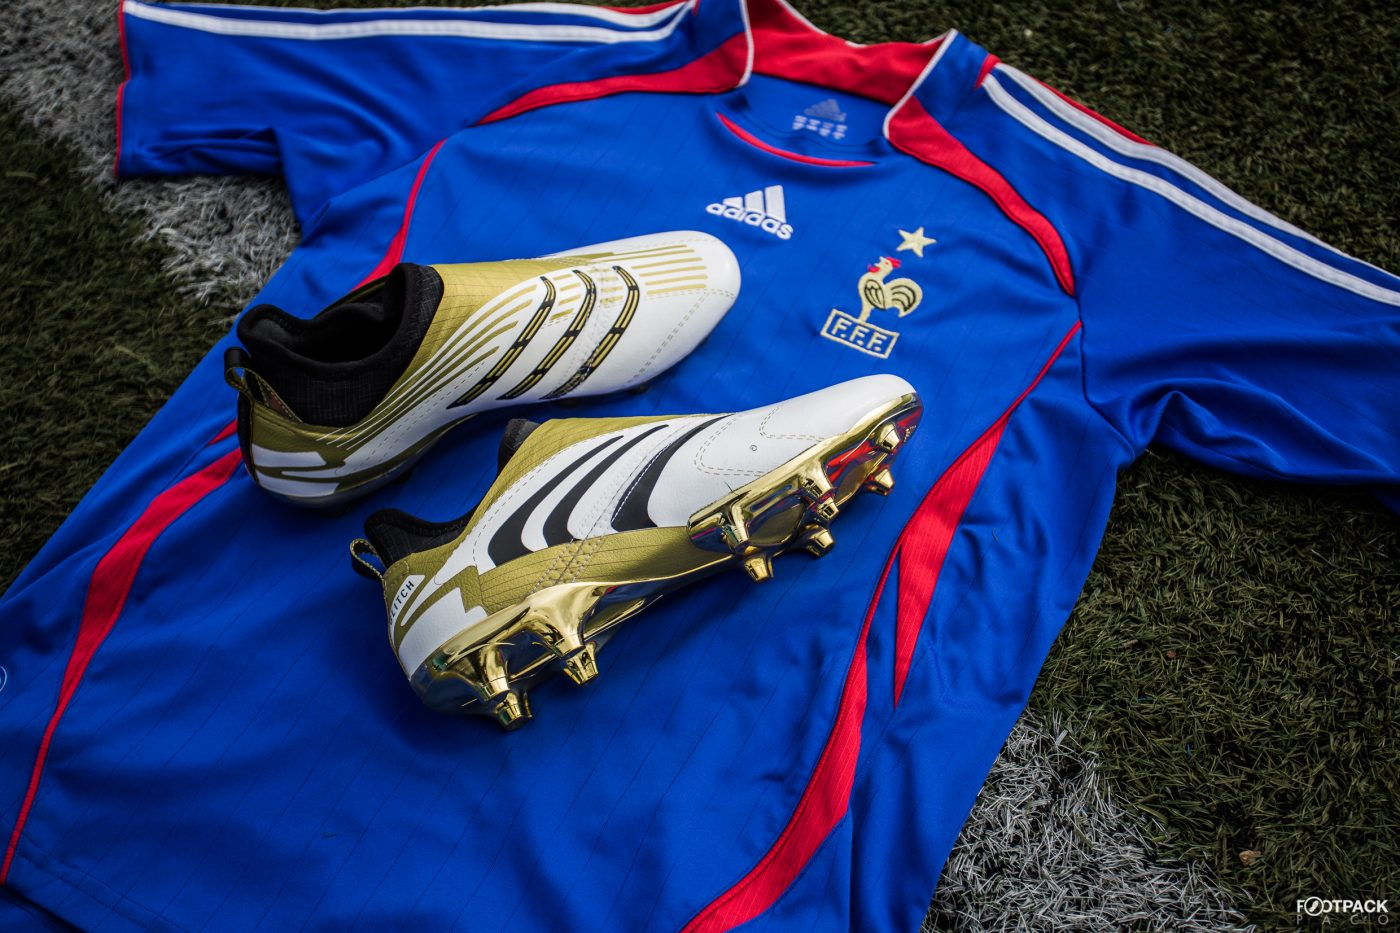 adidas-glitch-classic-pack-absoluteskin-predator-absolute-2006-footpack-13